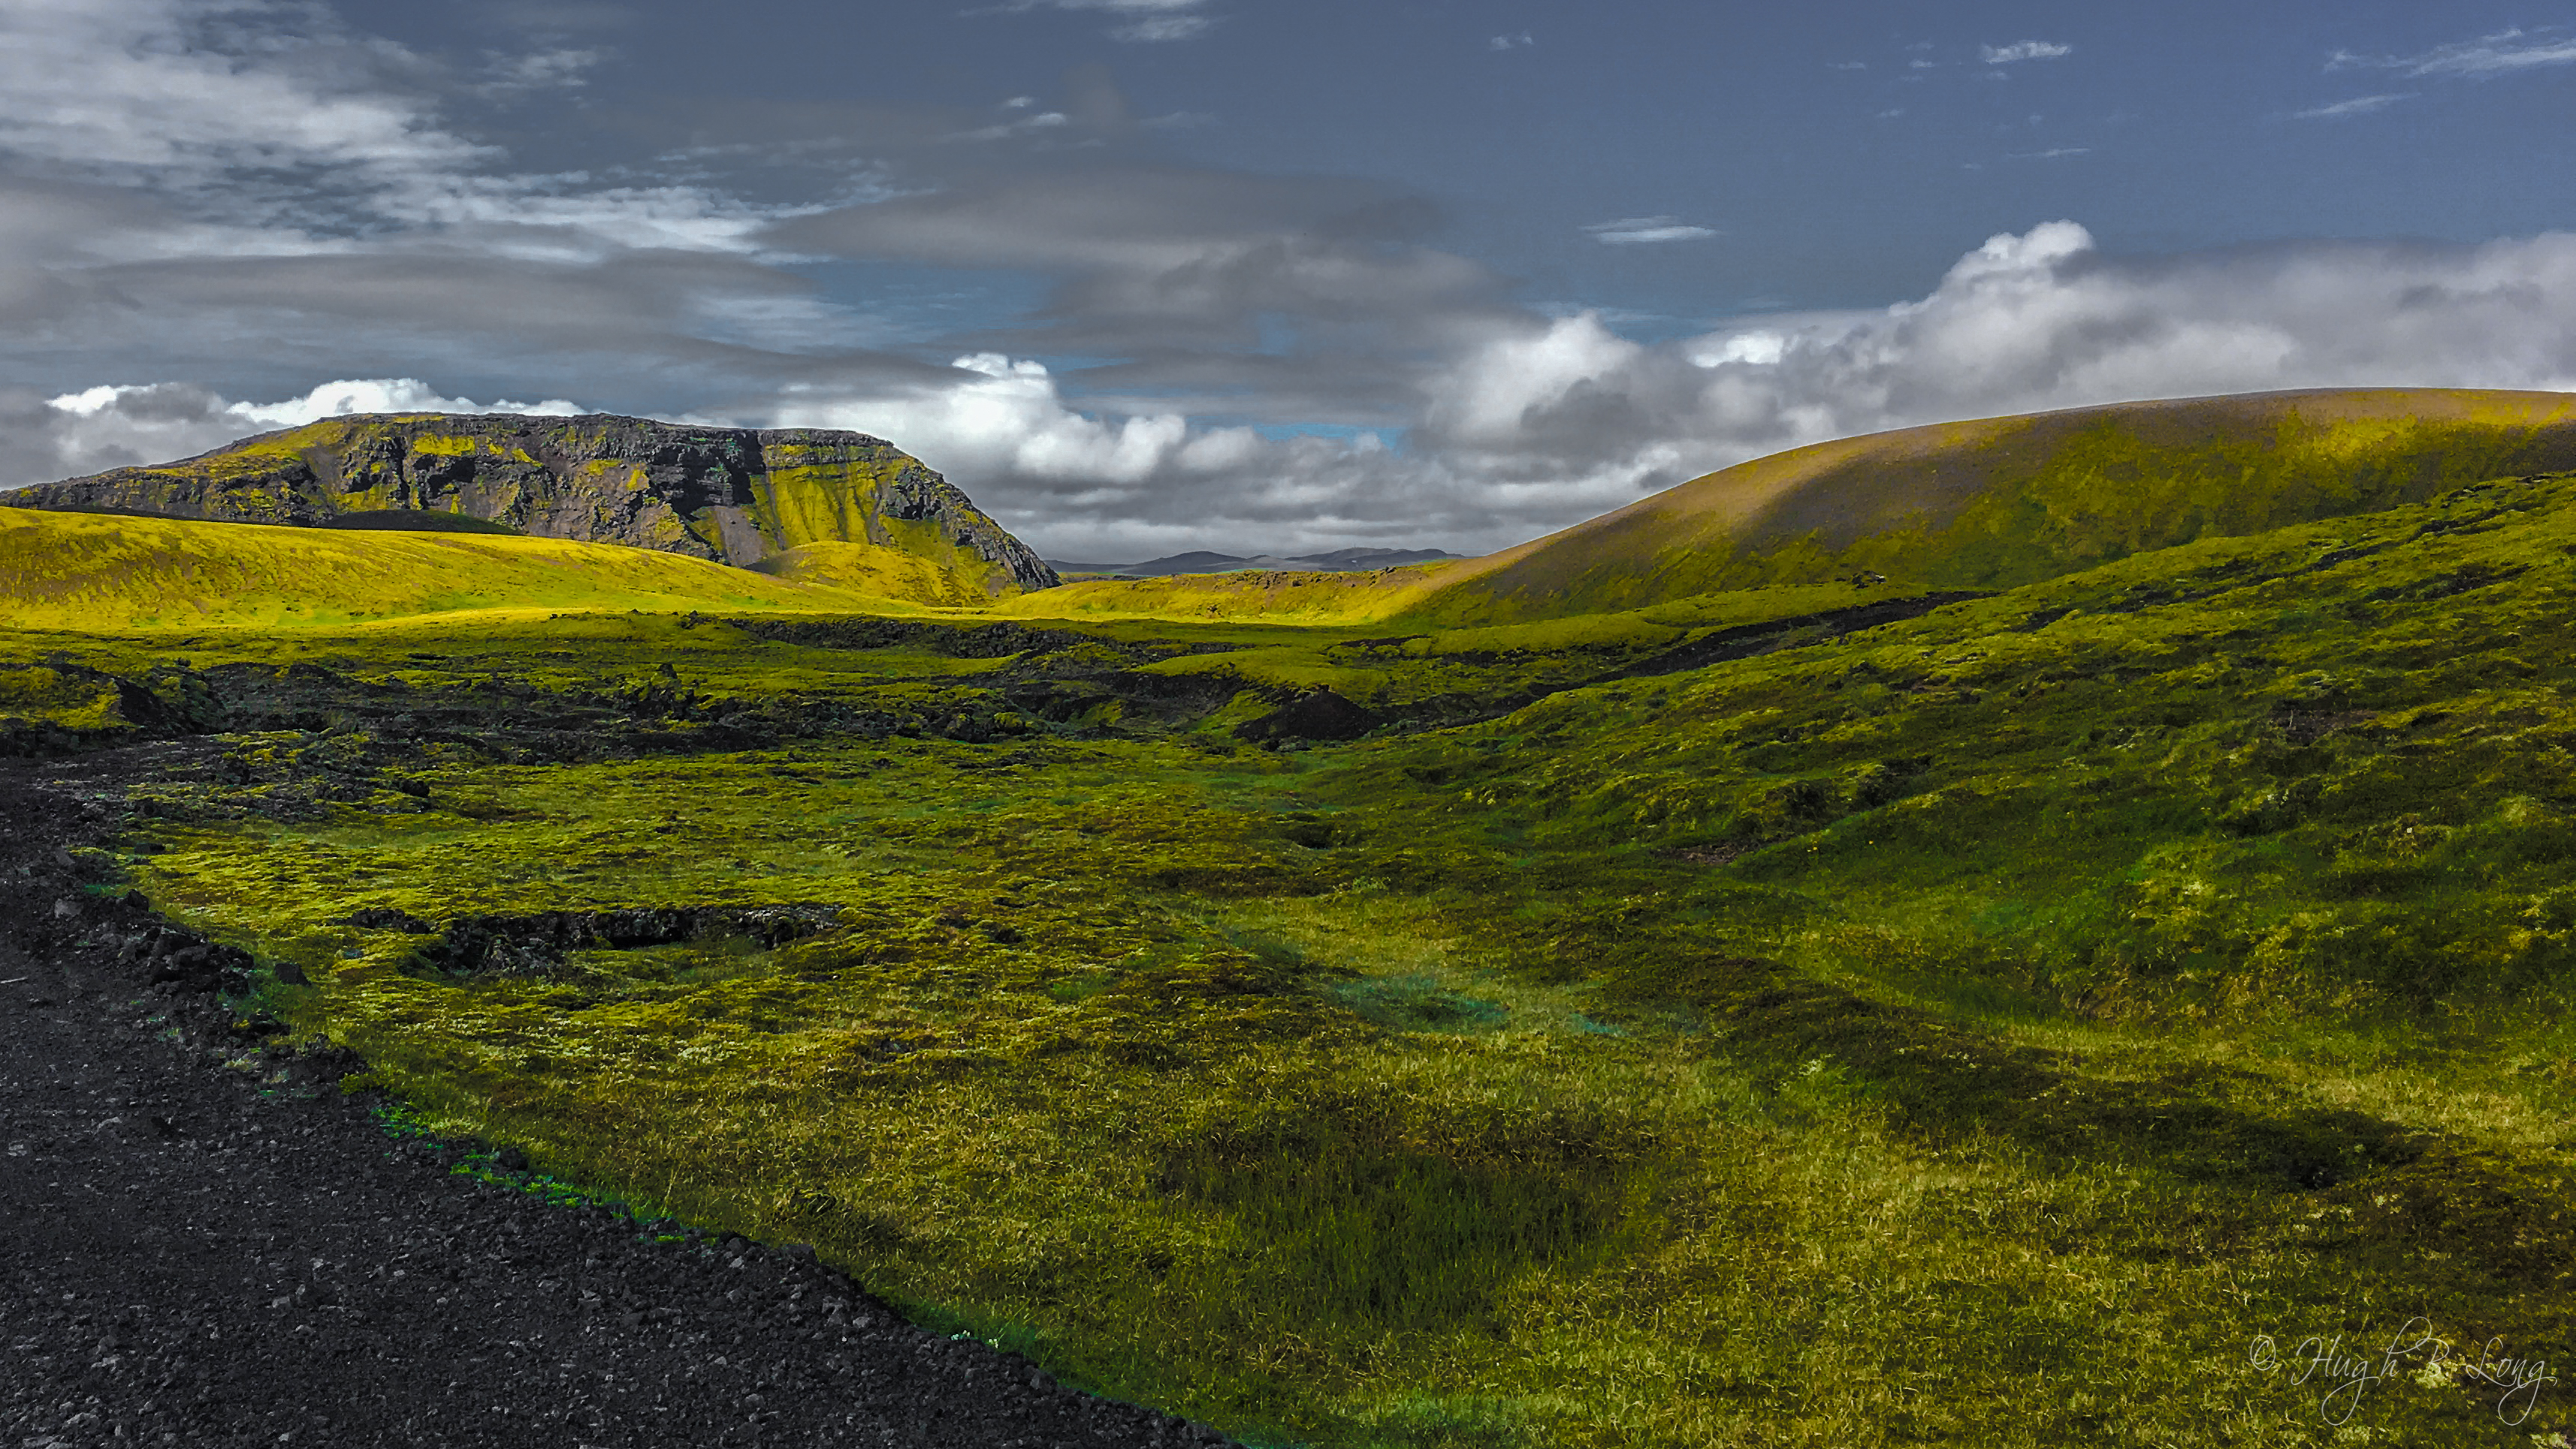 Postcards From Iceland 16 Green Hills Author Hugh B